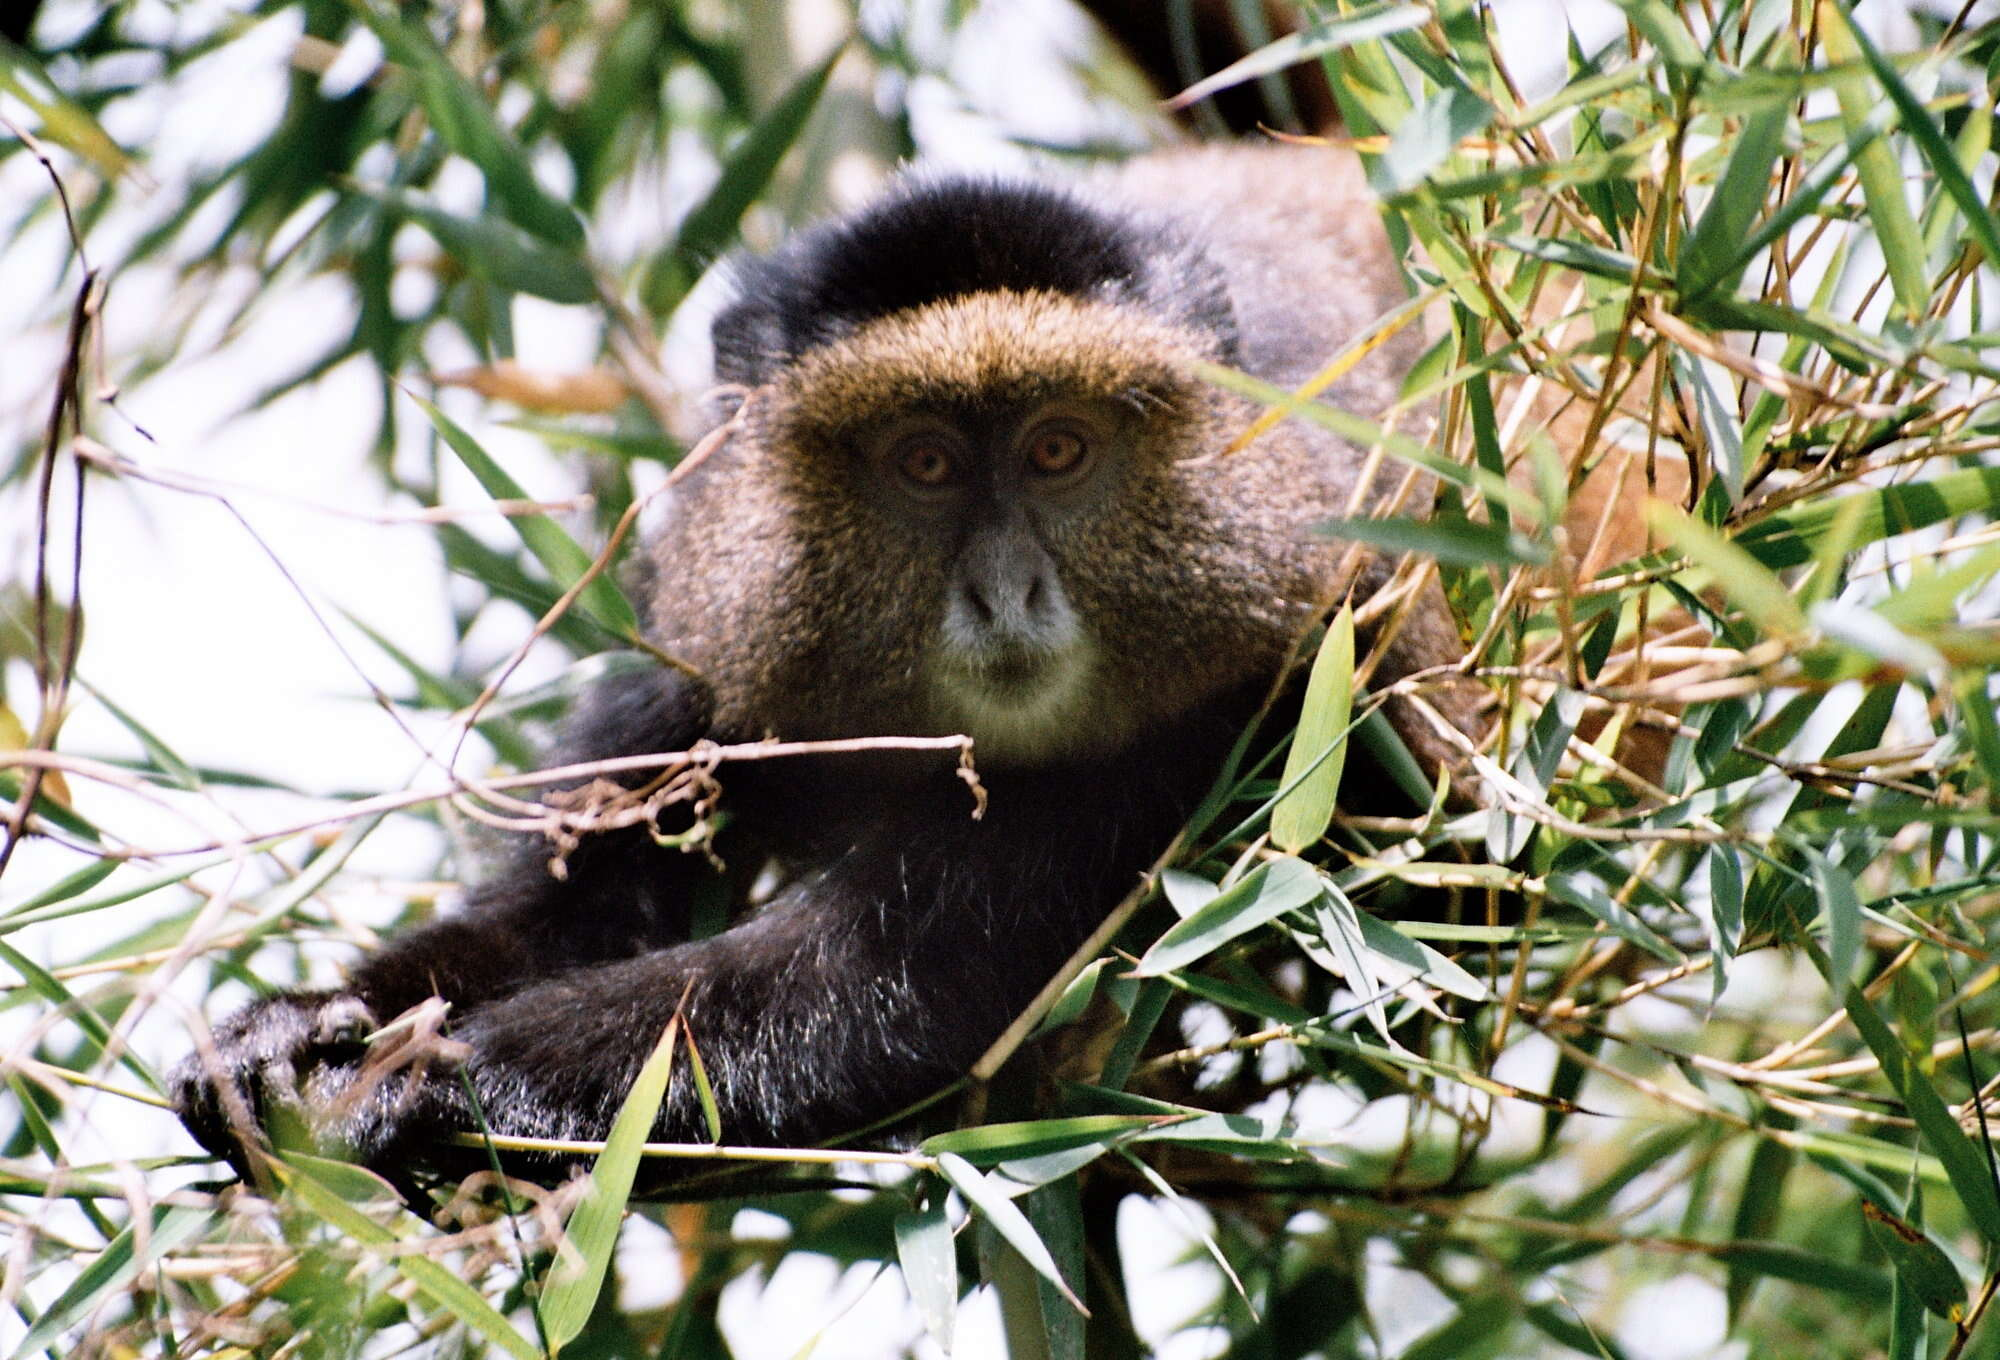 Private guided safari in Rwanda including chimpanzee tracking in Nyungwe Forest National Park, Lake Kivu, golden monkey and mountain gorilla tracking in Volcanoes National Park and Kigali